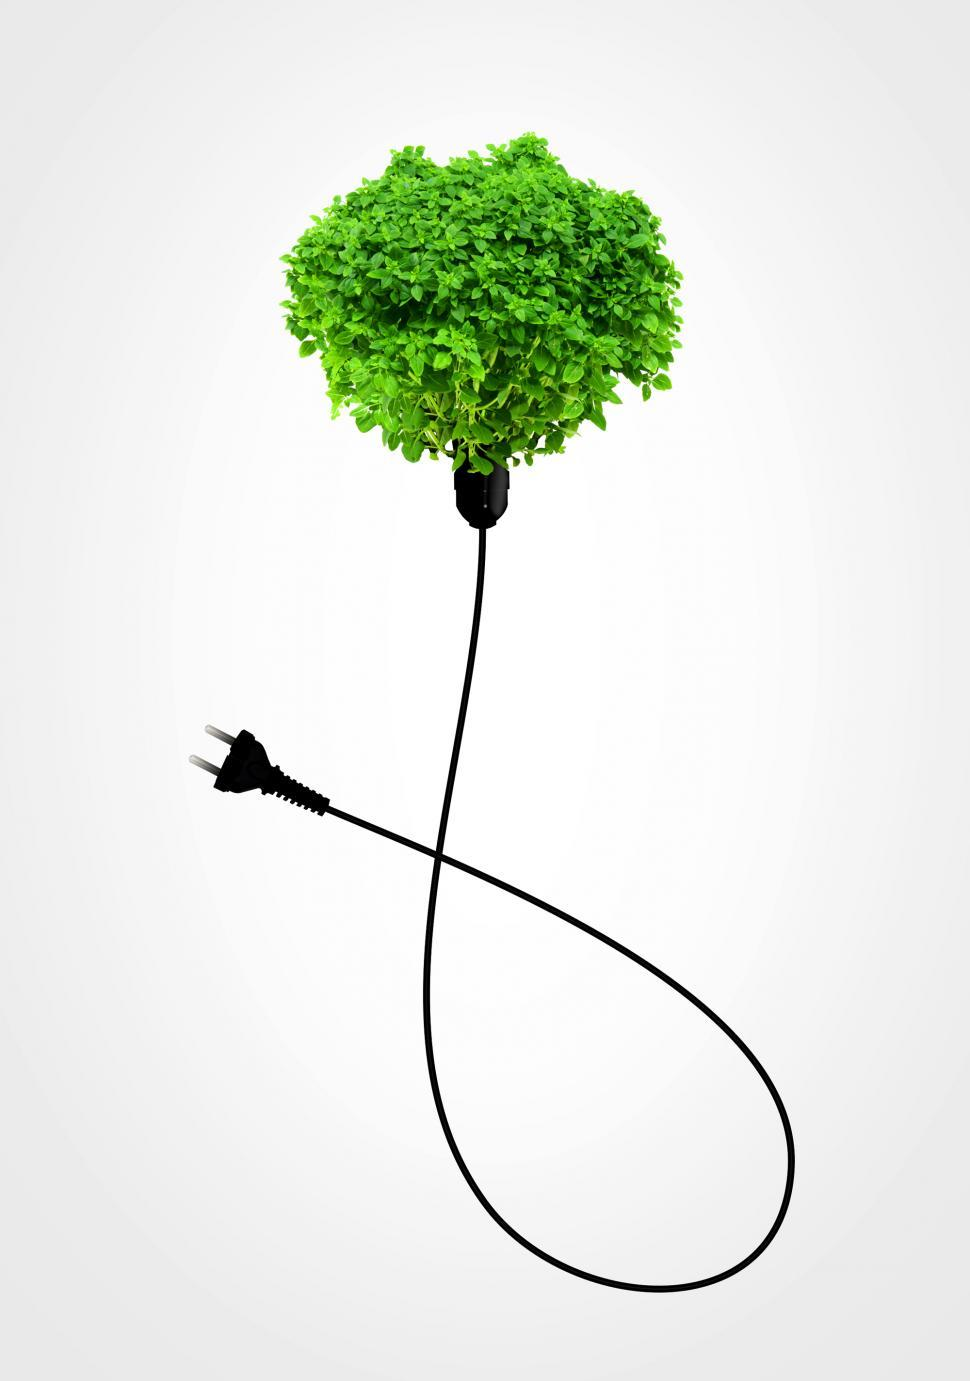 Download Free Stock Photo of Clean Energy Concept - A Green Power Plug on White